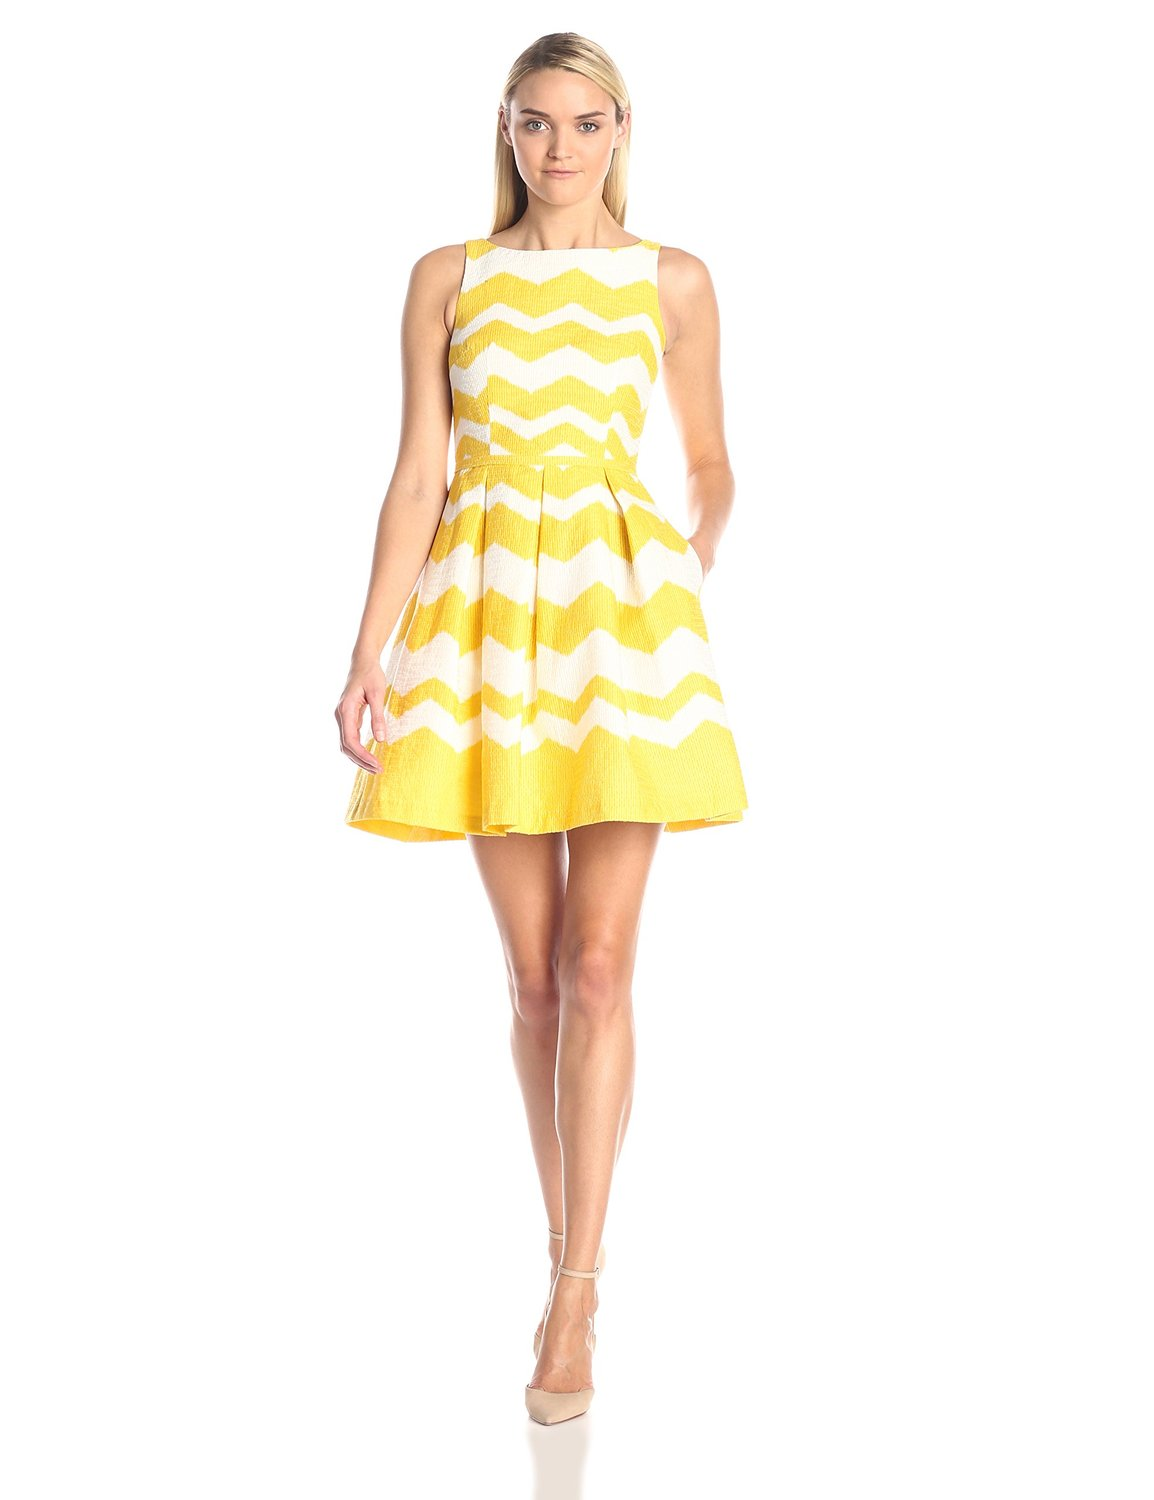 Yellow ivory Taylor Dresses Women's Zig-Zag Jacquard Fit-and-Flare Dress